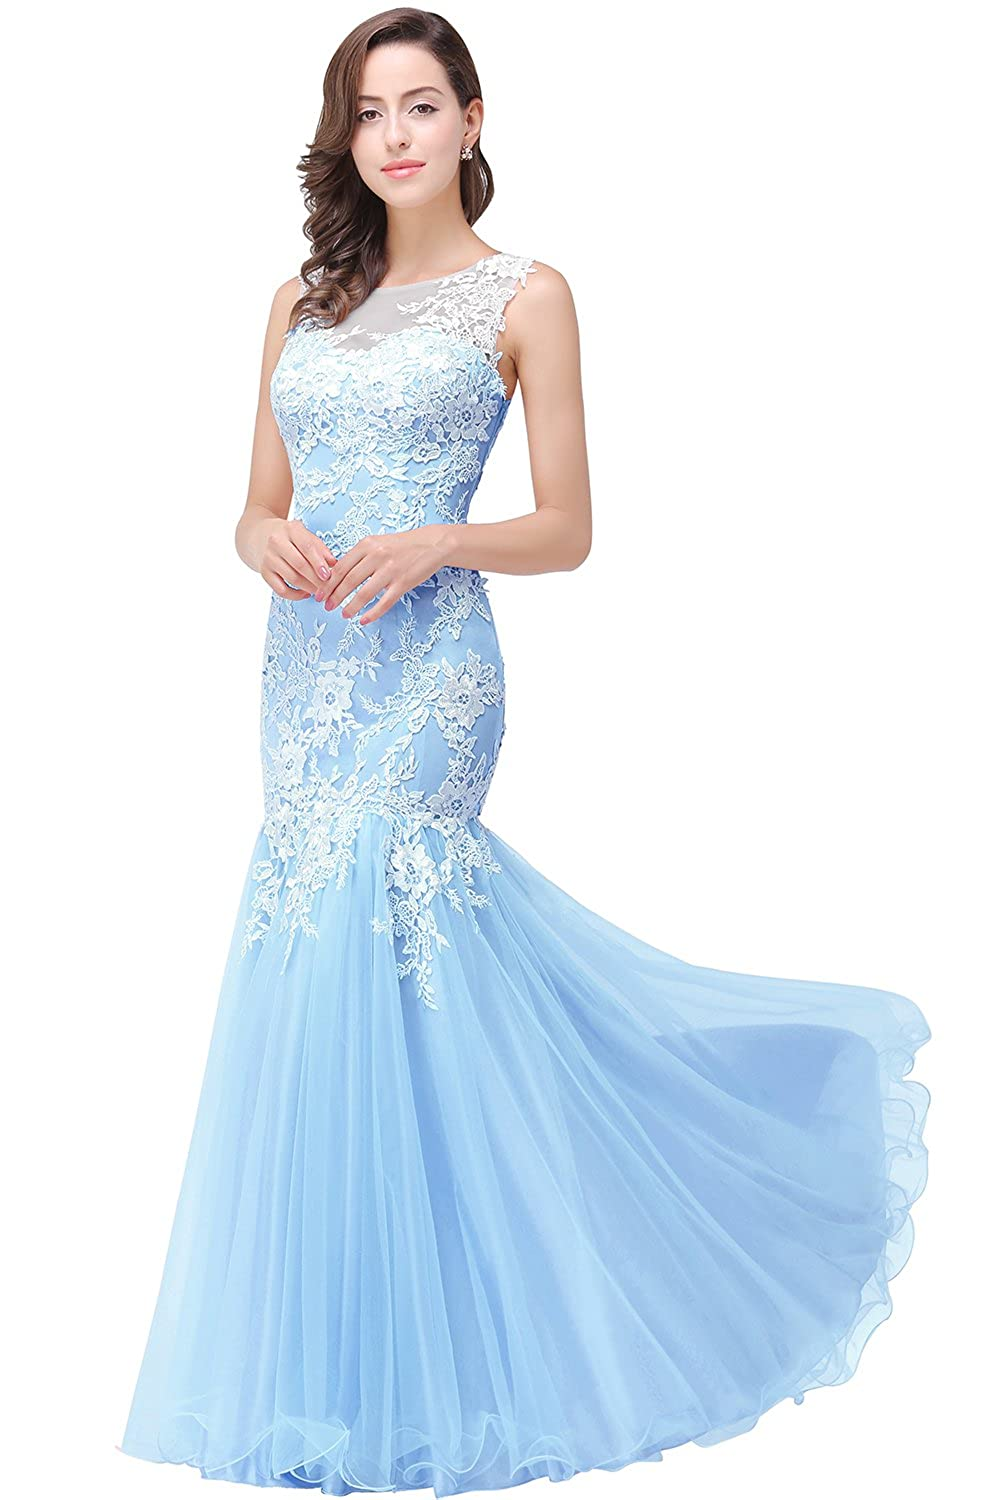 969d2f33a7252 Detailed size info please check OUR SIZE CHART among main product images,  NOT Size Chart link from Amazon Zipper closure. Dress can also be  customized to ...